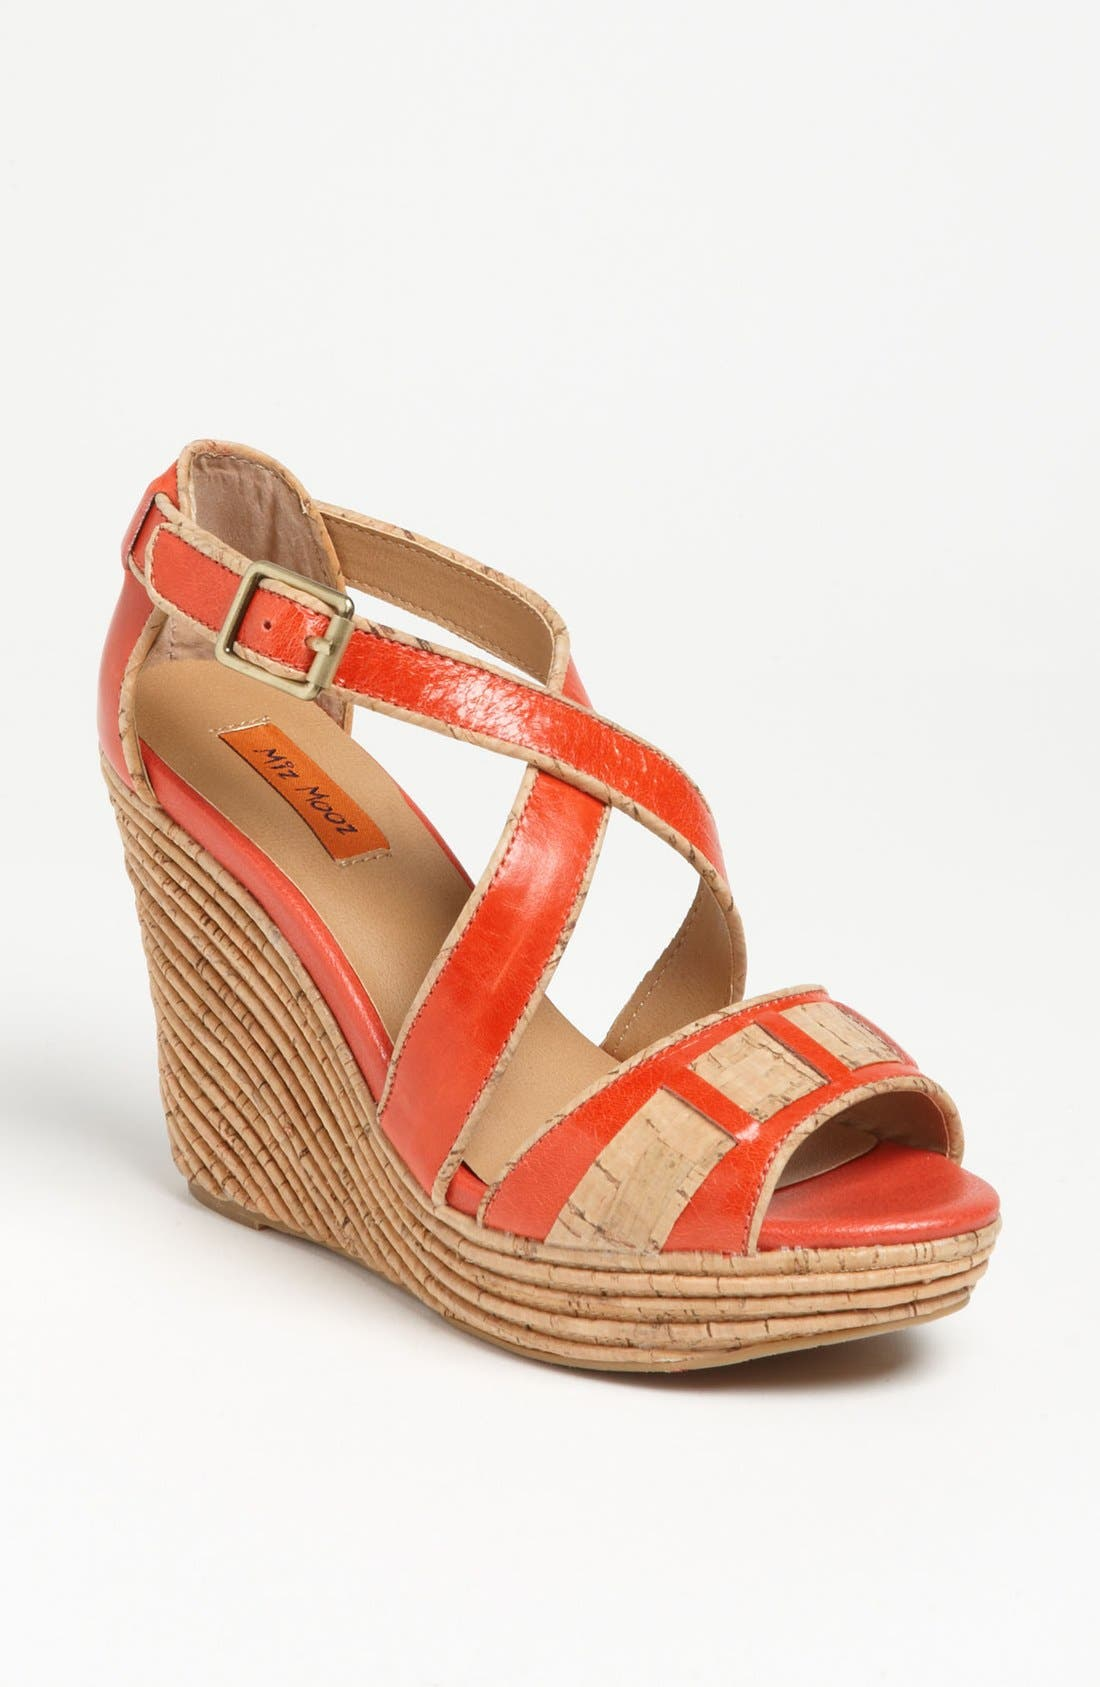 Alternate Image 1 Selected - Miz Mooz 'Kenya' Sandal